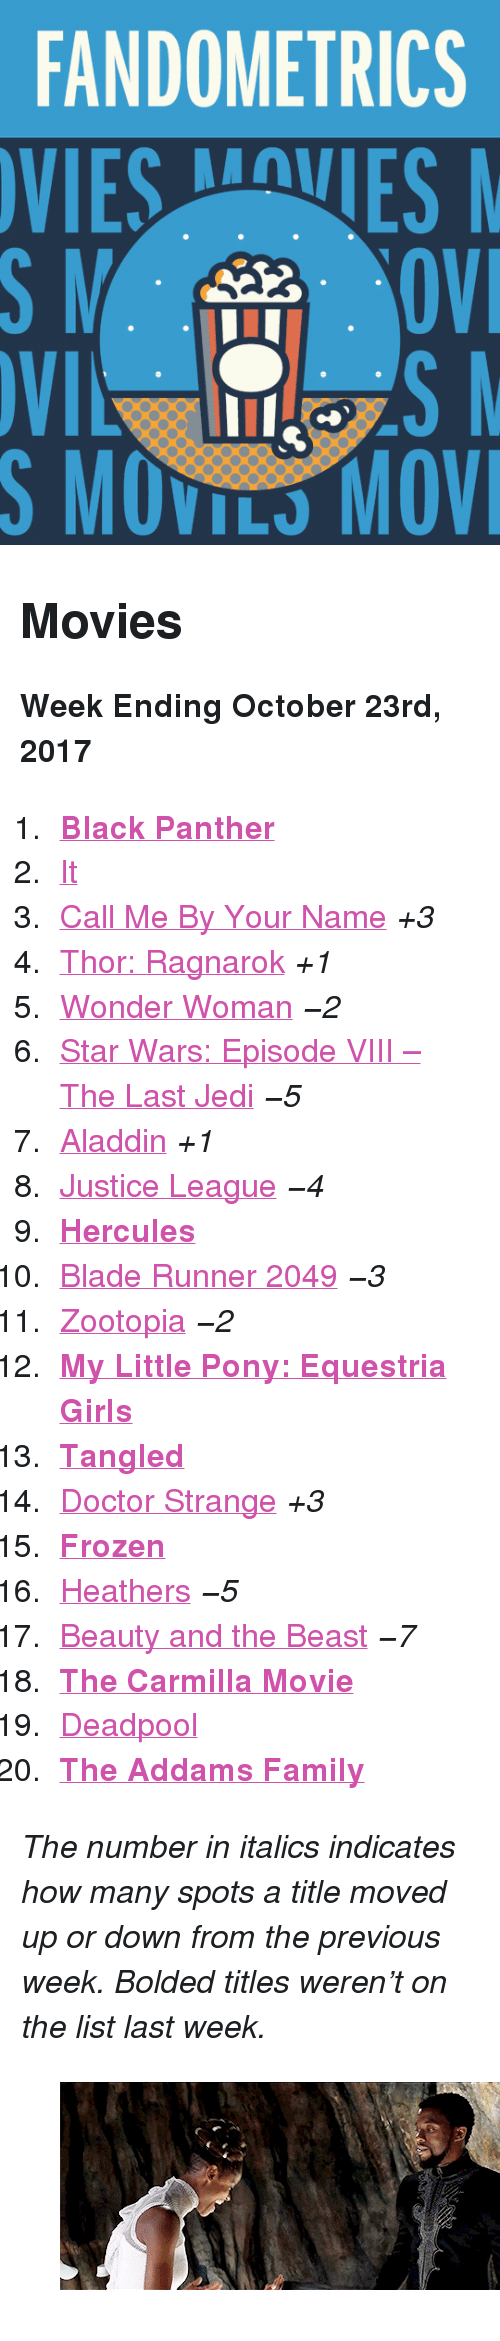 "My Little Pony: FANDOMETRICS  VIESVES  S MOVILS MOV <h2>Movies</h2><p><b>Week Ending October 23rd, 2017</b></p><ol><li><a href=""http://tumblr.co/613687A7g""><b>Black Panther</b></a></li><li><a href=""http://tumblr.co/613787A79"">It</a></li><li><a href=""http://tumblr.co/613987A7c"">Call Me By Your Name</a> <i>+3</i></li><li><a href=""http://tumblr.co/613087A7Y"">Thor: Ragnarok</a> <i>+1</i></li><li><a href=""http://tumblr.co/613187A7l"">Wonder Woman</a> <i><i>−2</i></i></li><li><a href=""http://tumblr.co/613287A7m"">Star Wars: Episode VIII – The Last Jedi</a> <i><i>−5</i></i></li><li><a href=""http://tumblr.co/613387A7W"">Aladdin</a> <i>+1</i></li><li><a href=""http://tumblr.co/613487A7o"">Justice League</a> <i><i>−4</i></i></li><li><a href=""http://tumblr.co/613587A7U""><b>Hercules</b></a></li><li><a href=""http://tumblr.co/613687A7q"">Blade Runner 2049</a> <i><i>−3</i></i></li><li><a href=""http://tumblr.co/613787A7S"">Zootopia</a> <i><i>−2</i></i></li><li><a href=""http://tumblr.co/613887A7s""><b>My Little Pony: Equestria Girls</b></a></li><li><a href=""http://tumblr.co/613087A7Q""><b>Tangled</b></a></li><li><a href=""http://tumblr.co/613287A7a"">Doctor Strange</a> <i>+3</i></li><li><a href=""http://tumblr.co/613387A7x""><b>Frozen</b></a></li><li><a href=""http://tumblr.co/613487A7I"">Heathers</a> <i><i>−5</i></i></li><li><a href=""http://tumblr.co/613587A7L"">Beauty and the Beast</a> <i><i>−7</i></i></li><li><a href=""http://tumblr.co/613687A70""><b>The Carmilla Movie</b></a></li><li><a href=""http://tumblr.co/613787A7F"">Deadpool</a></li><li><a href=""http://tumblr.co/613887A72""><b>The Addams Family</b></a></li></ol><p><i>The number in italics indicates how many spots a title moved up or down from the previous week. Bolded titles weren't on the list last week.</i></p><figure class=""tmblr-full pinned-target"" data-orig-height=""208"" data-orig-width=""500"" data-tumblr-attribution=""blackpantherdaily:doeZI-m6lUTGGN4bxwYF7g:ZFpHte2R2A3-b""><img src=""https://78.media.tumblr.com/5a85dbe2c3b07c2c2aee44cd0b55a2f0/tumblr_oxx78hDoK91w36i71o1_500.gif"" data-orig-height=""208"" data-orig-width=""500""/></figure>"